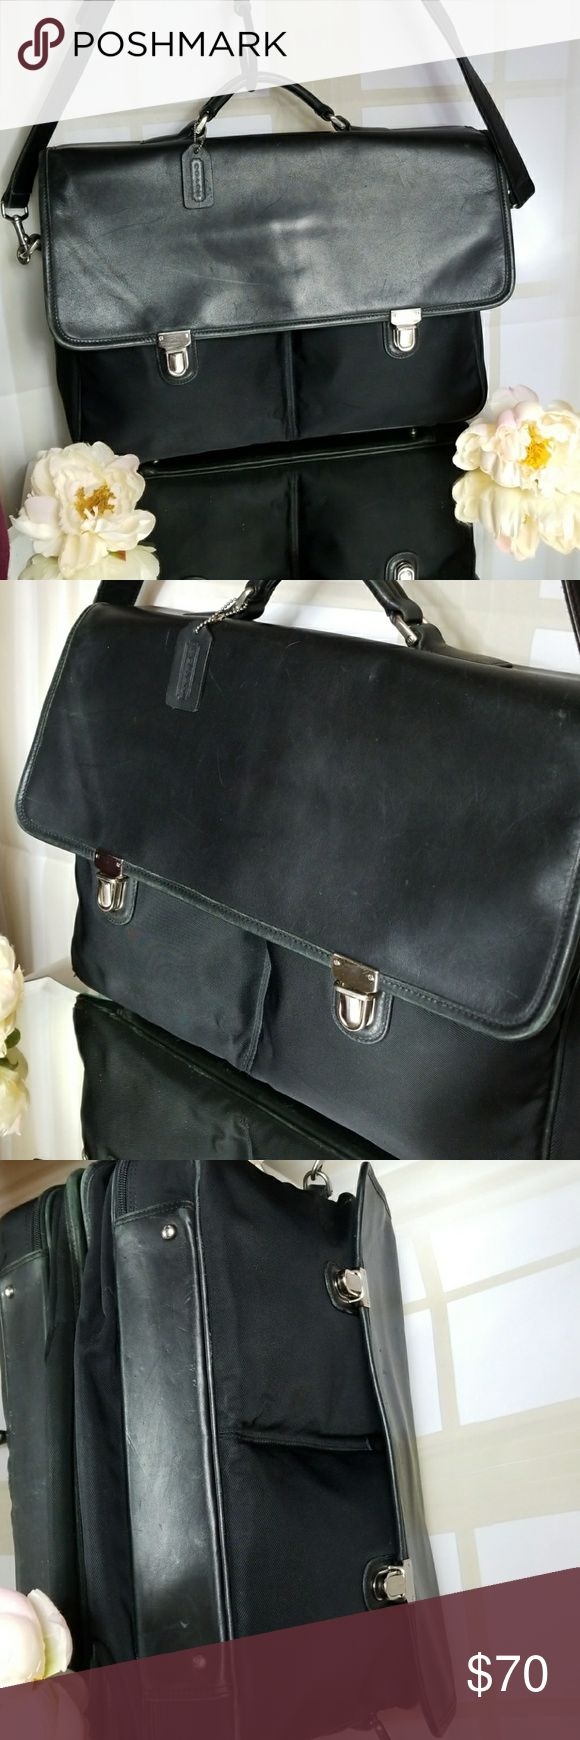 🐎Coach🐎 Black Leather and Nylon Laptop bag 🐎Coach🐎 Briefcase- preowned in good condition -Leather Briefcase/Laptop bag with heavy nylon pockets. Top handle and nice long 40 inch leather adjustable strap- Coach hang tag. 2 nylon front pockets and roomy outside pocket on back. Zipper on interior pocket and zipper closes the main compartment.  16(L),11(H)4(D) Bottom has slight tear on leather rims. Interior is clean and nicely padded for your laptop. Please check photos.  Thanks for…